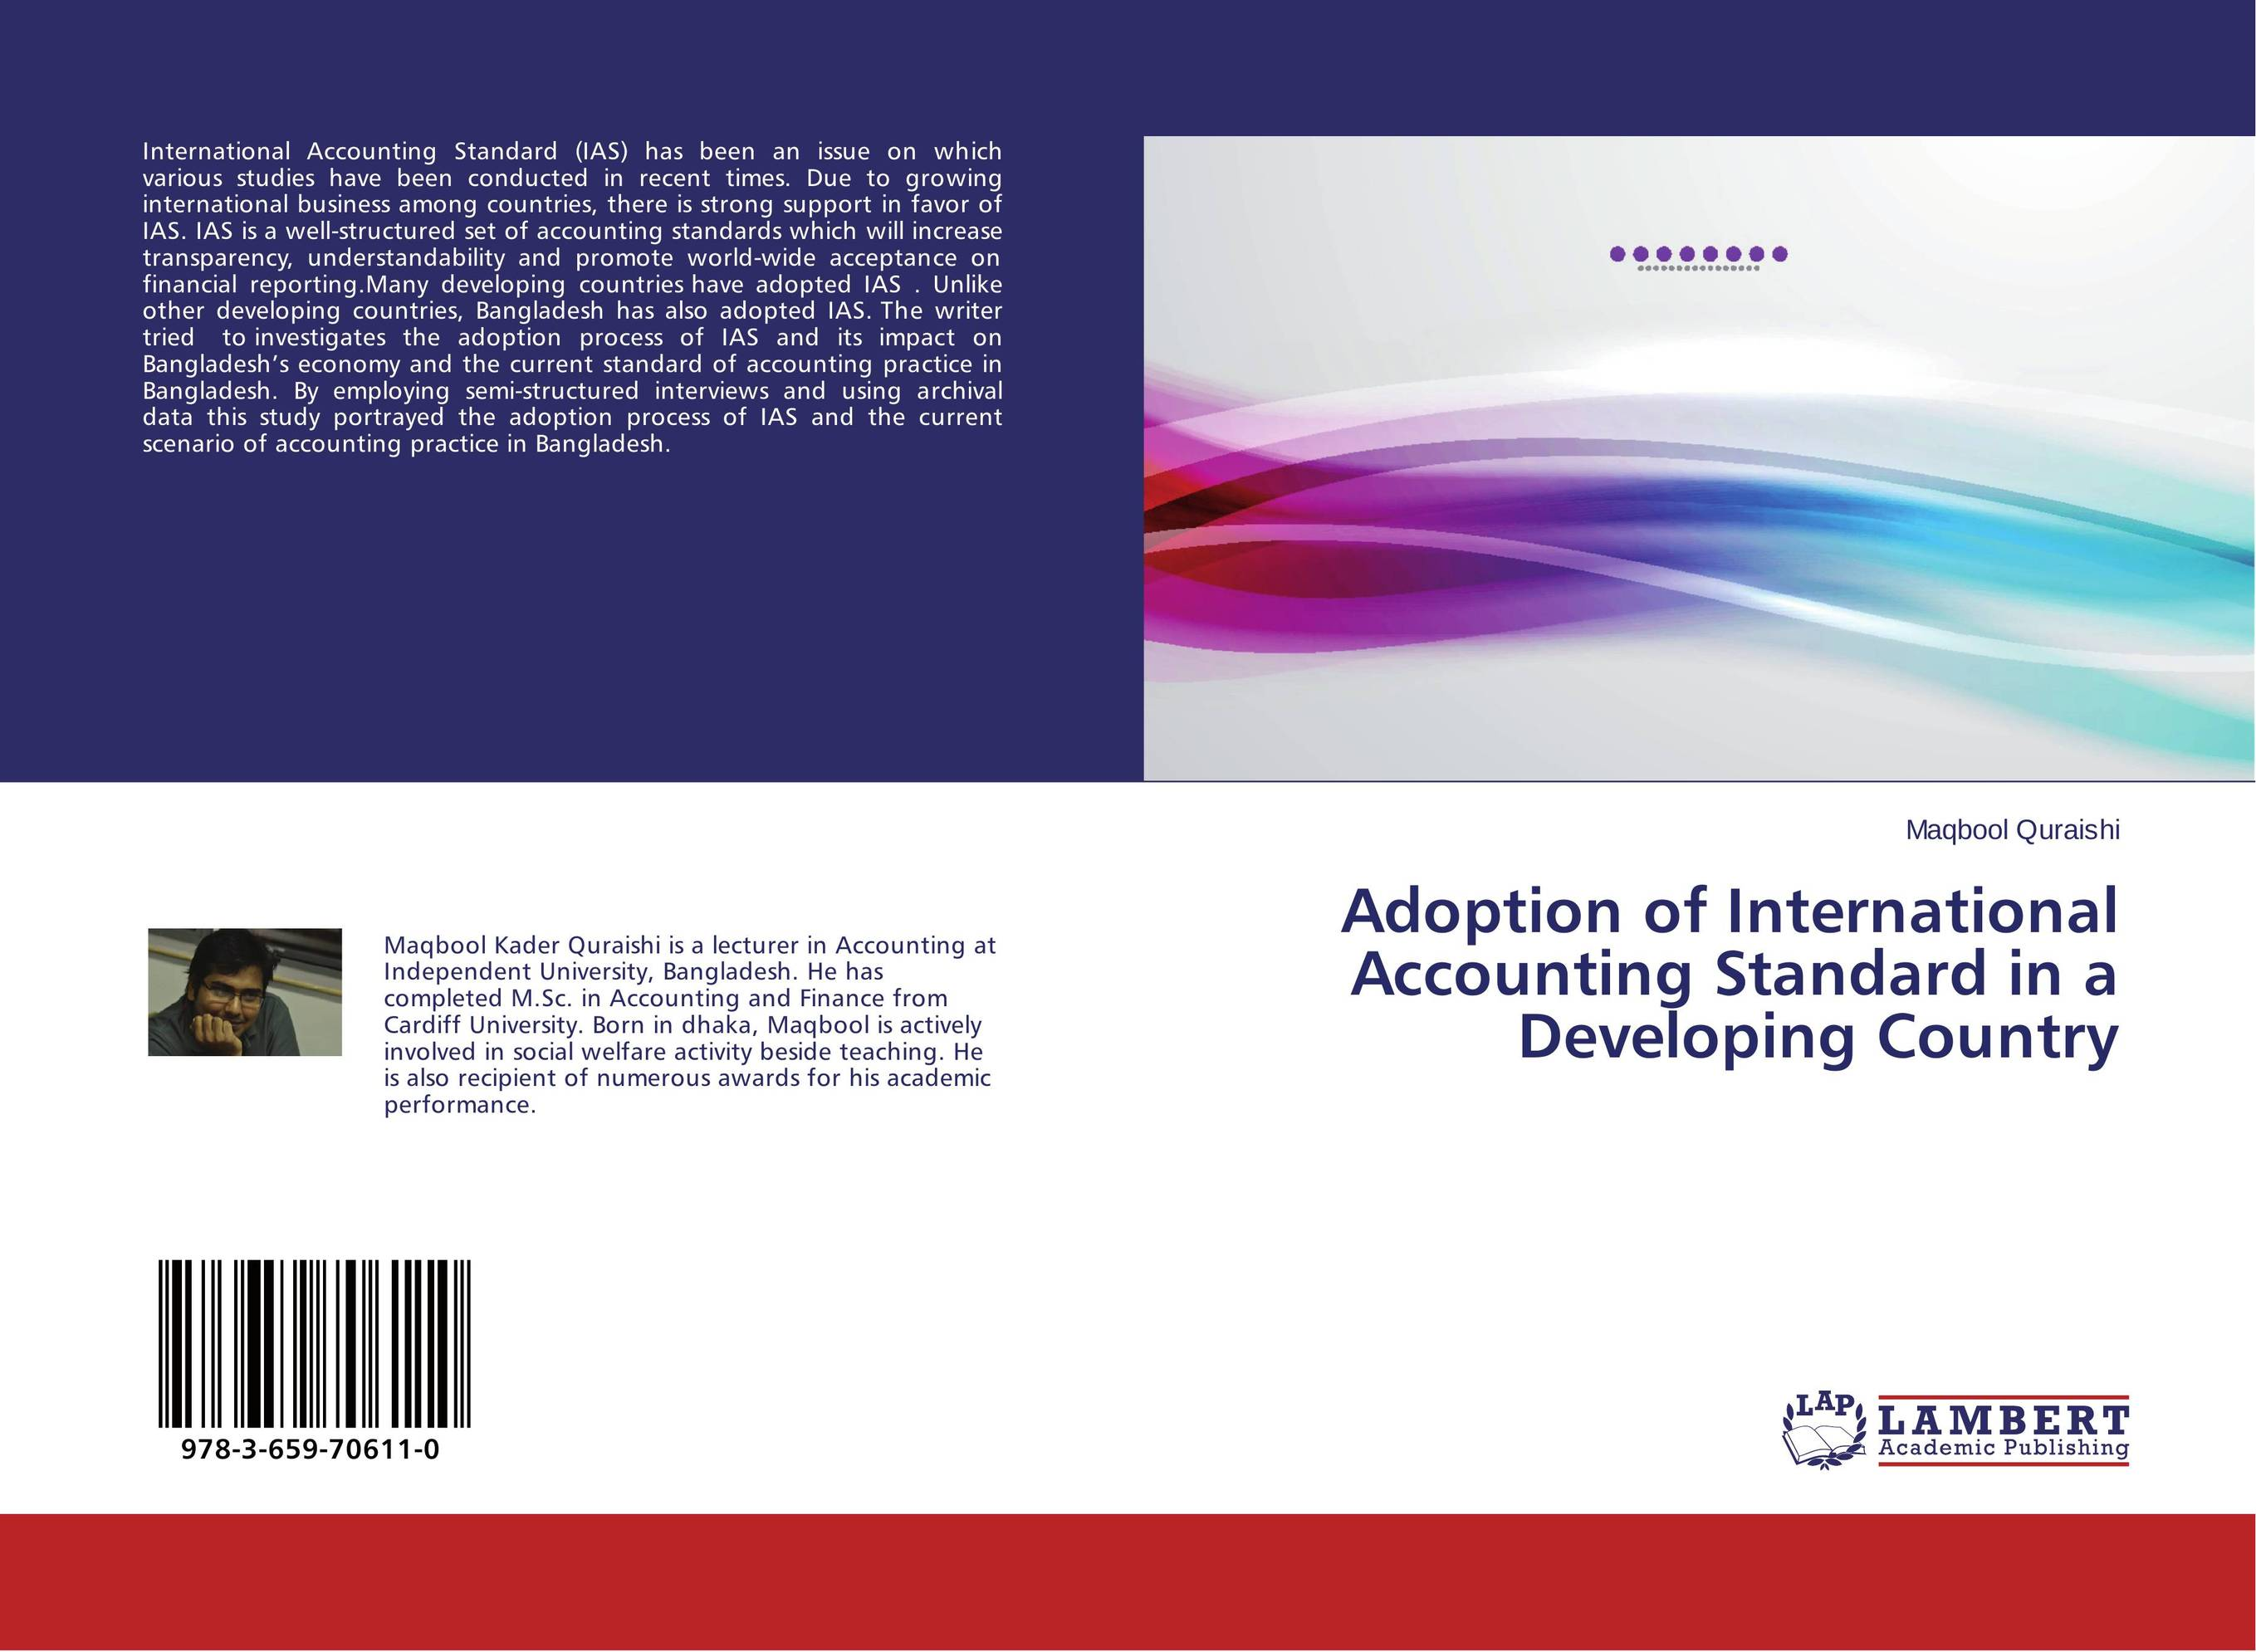 Adoption of International Accounting Standard in a Developing Country